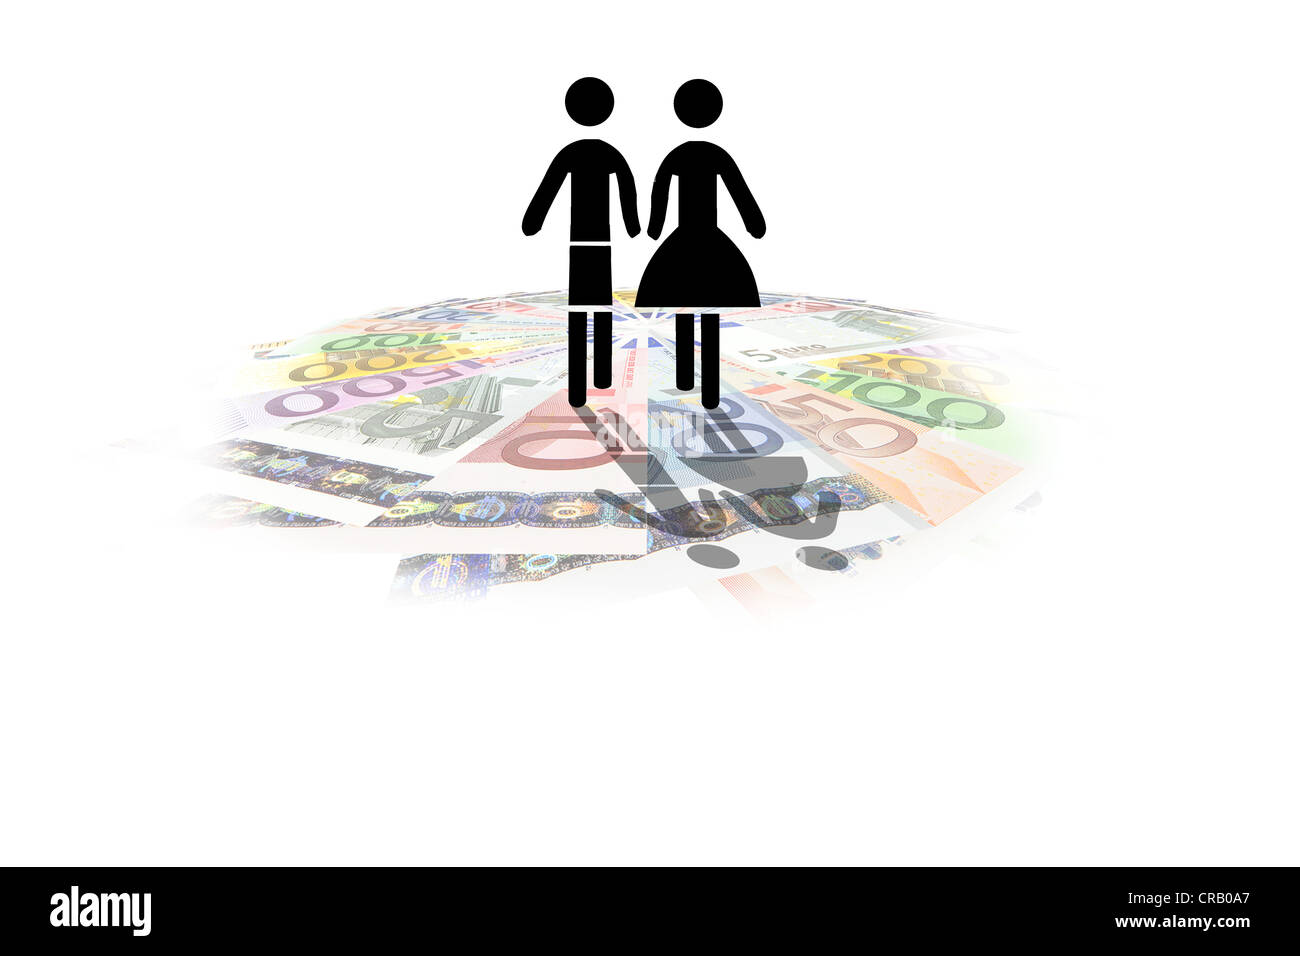 Pictogram of a couple on euro notes, symbolic image for an expensive lifestyle, cost of living for couples - Stock Image